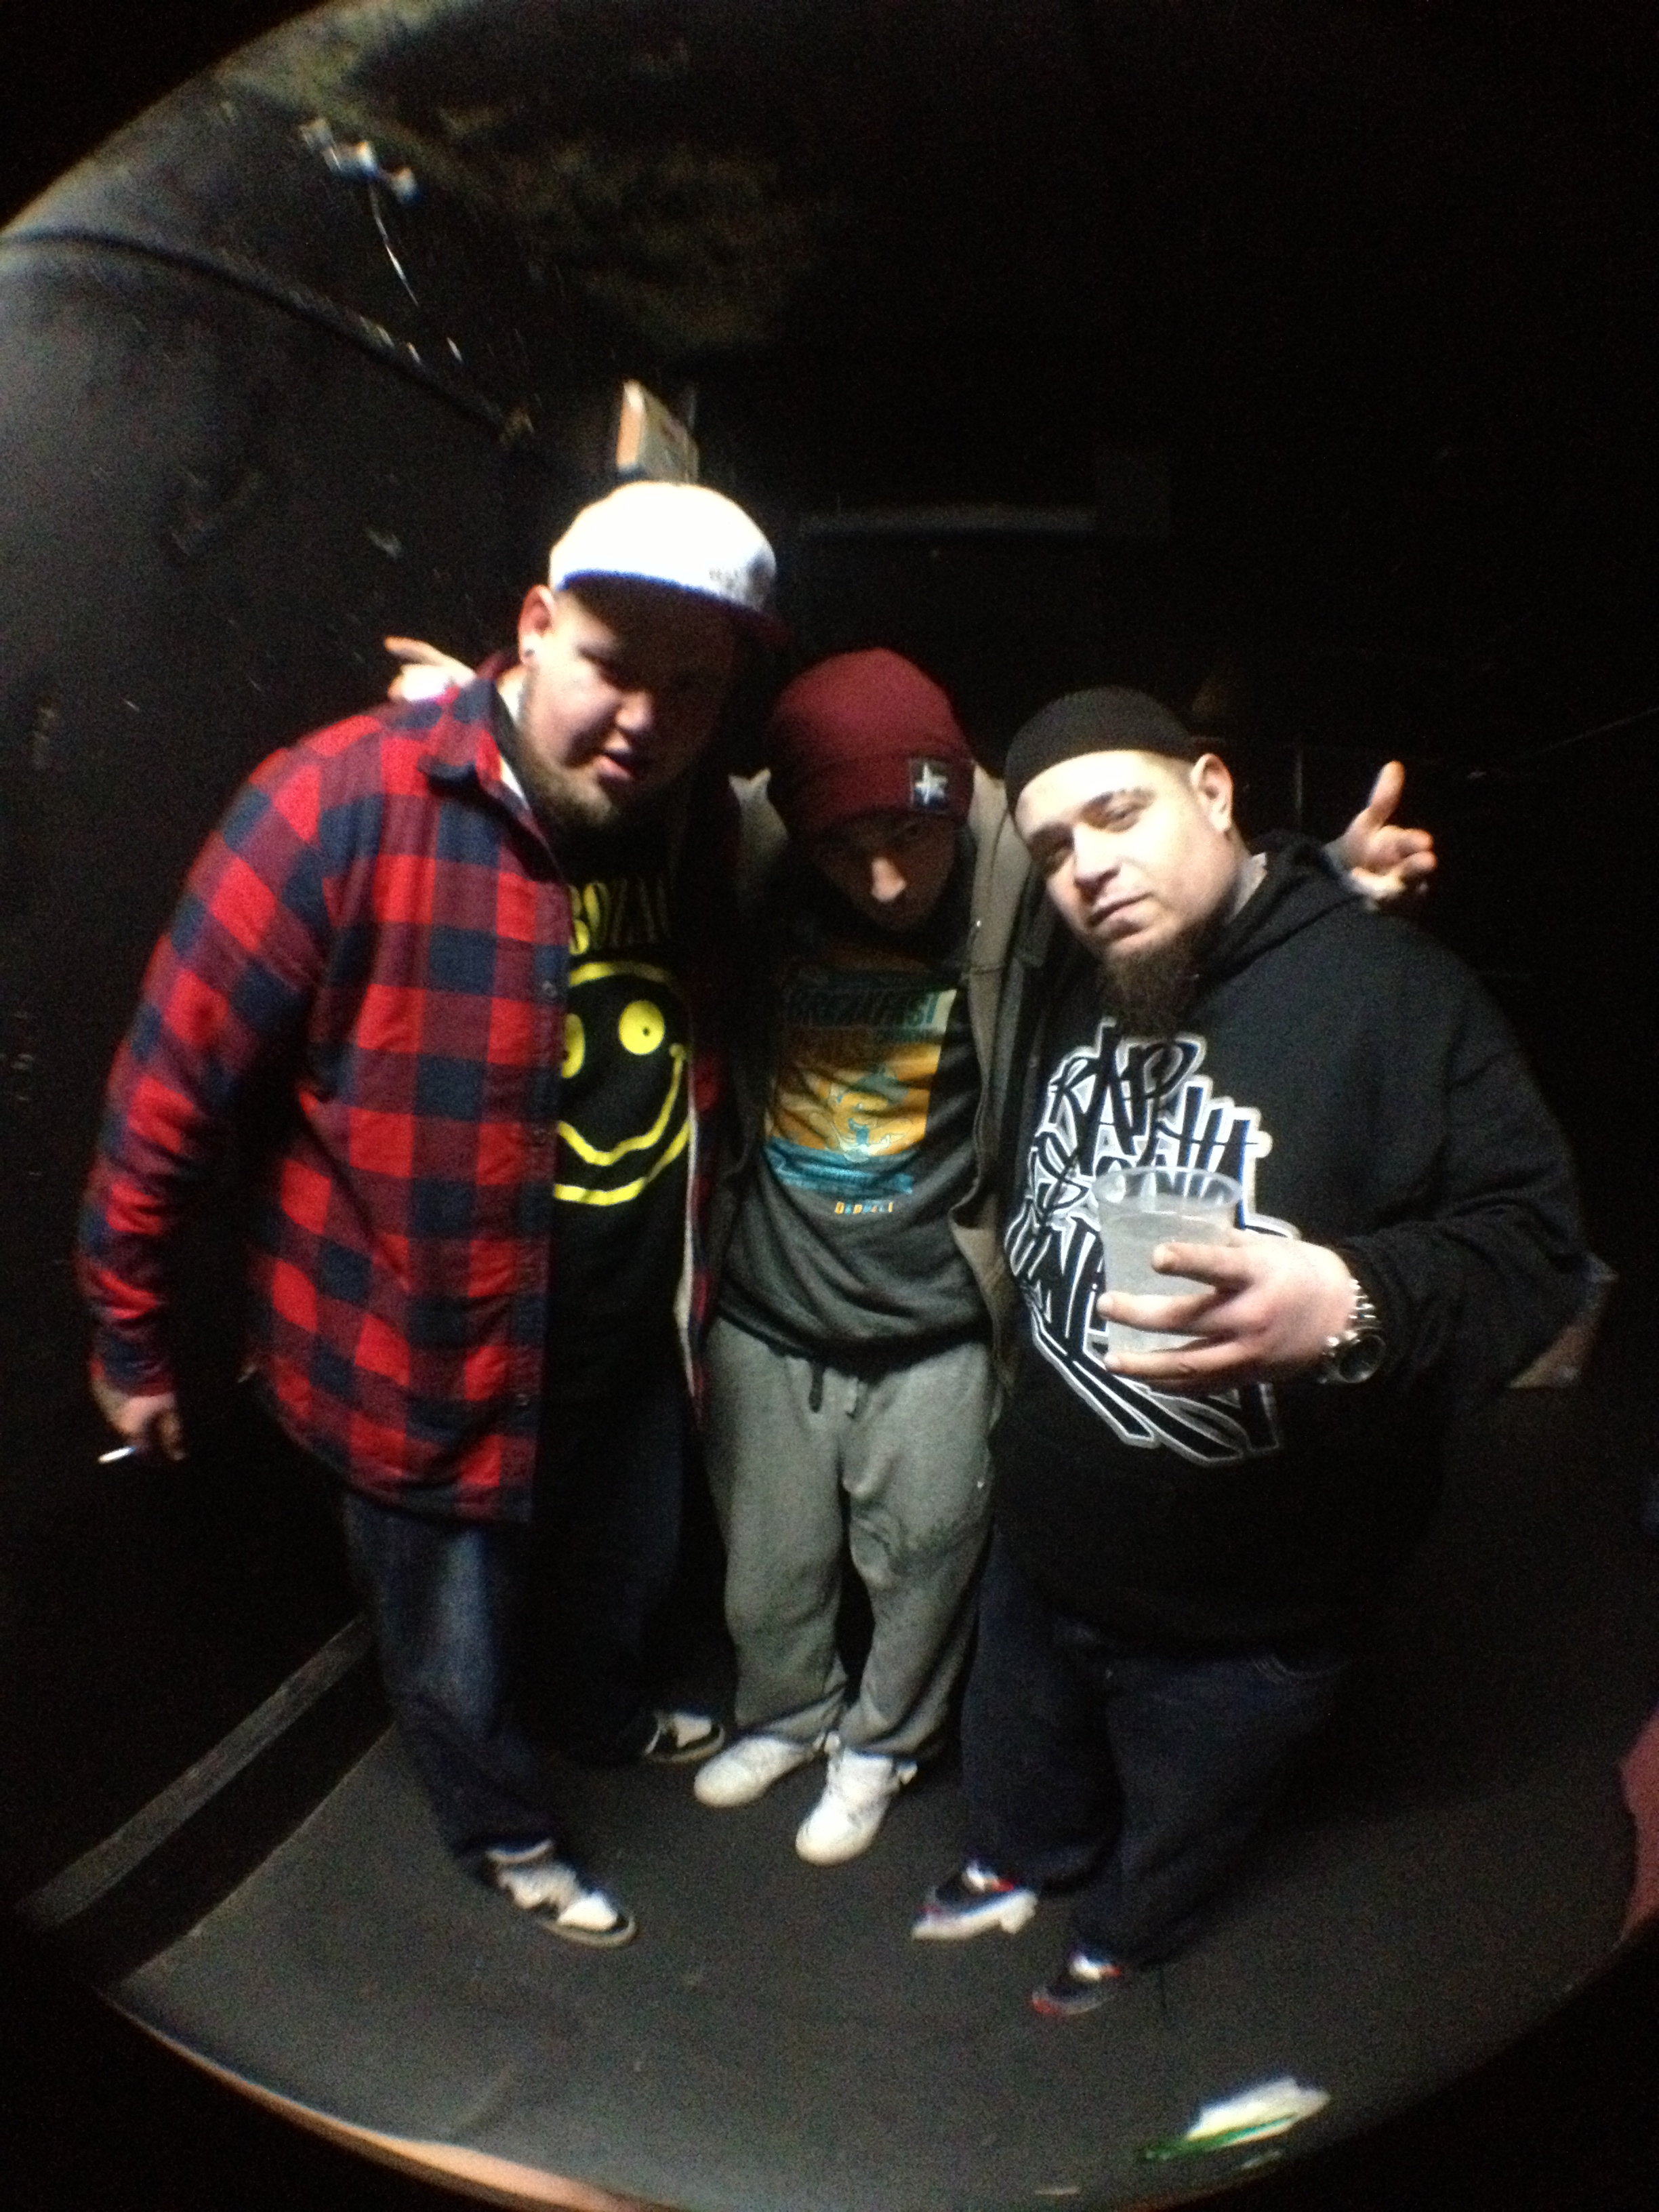 l-r: Rag 'N' Bone Man, Leaf Dog, Vinnie Paz